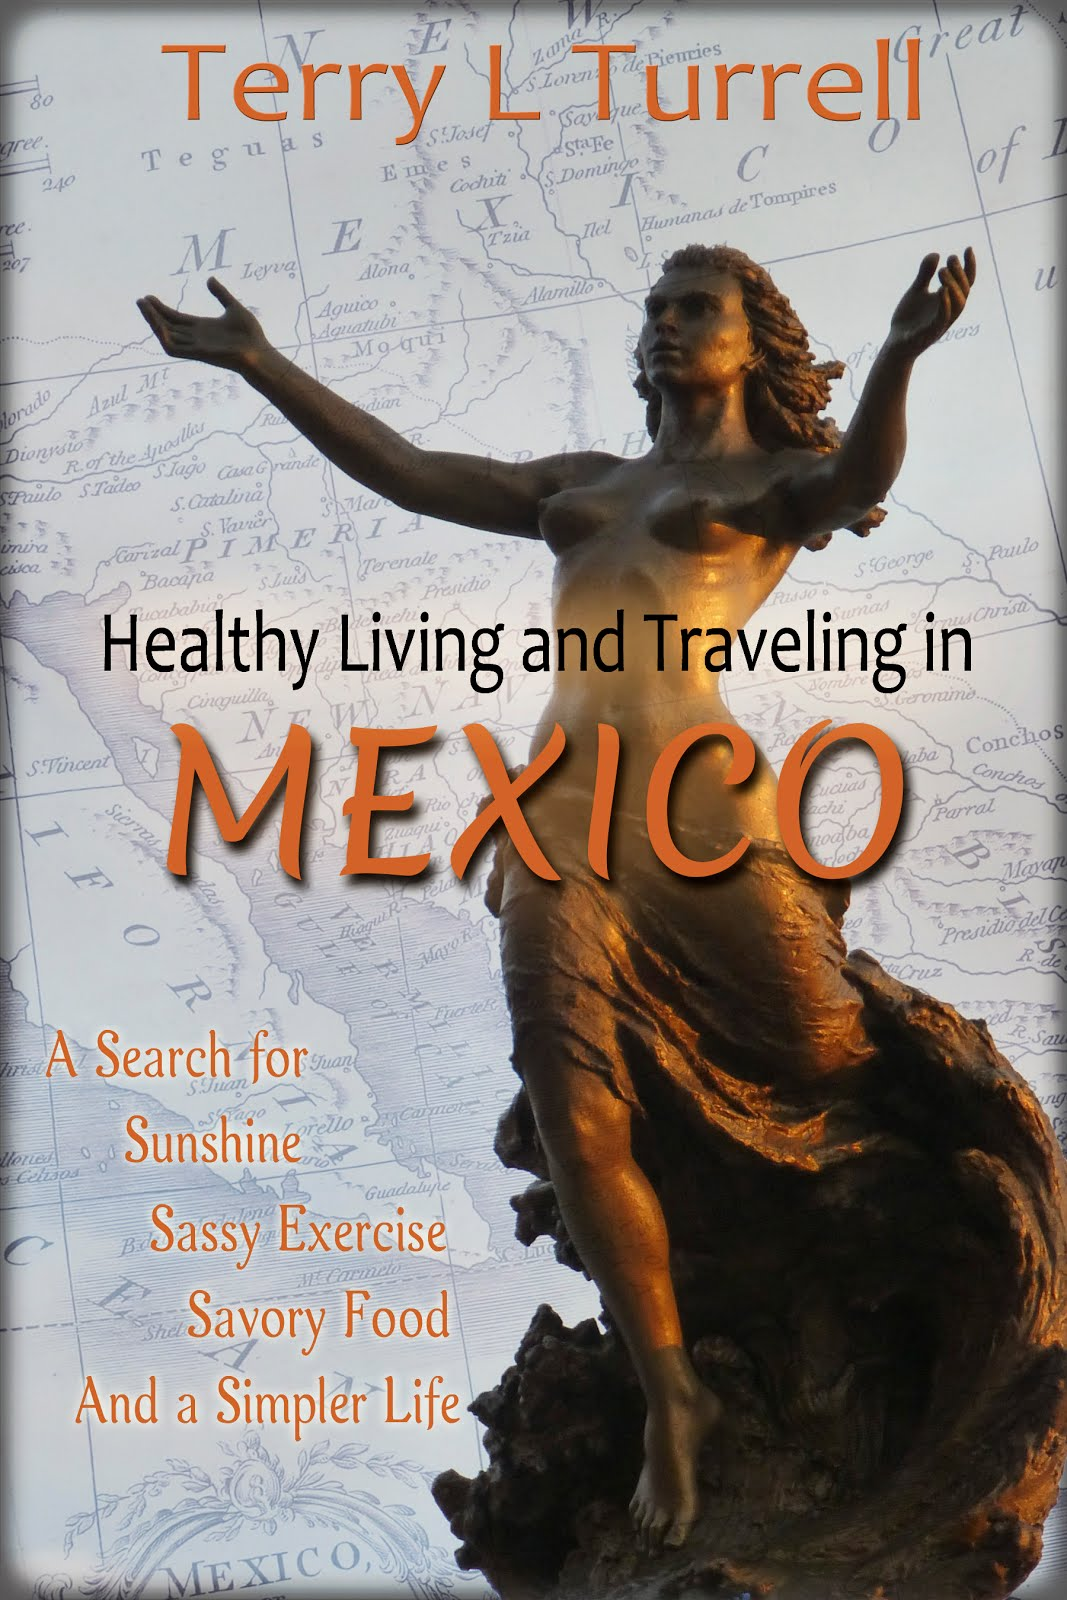 Healthy Living in Mexico #1 eBook Link: